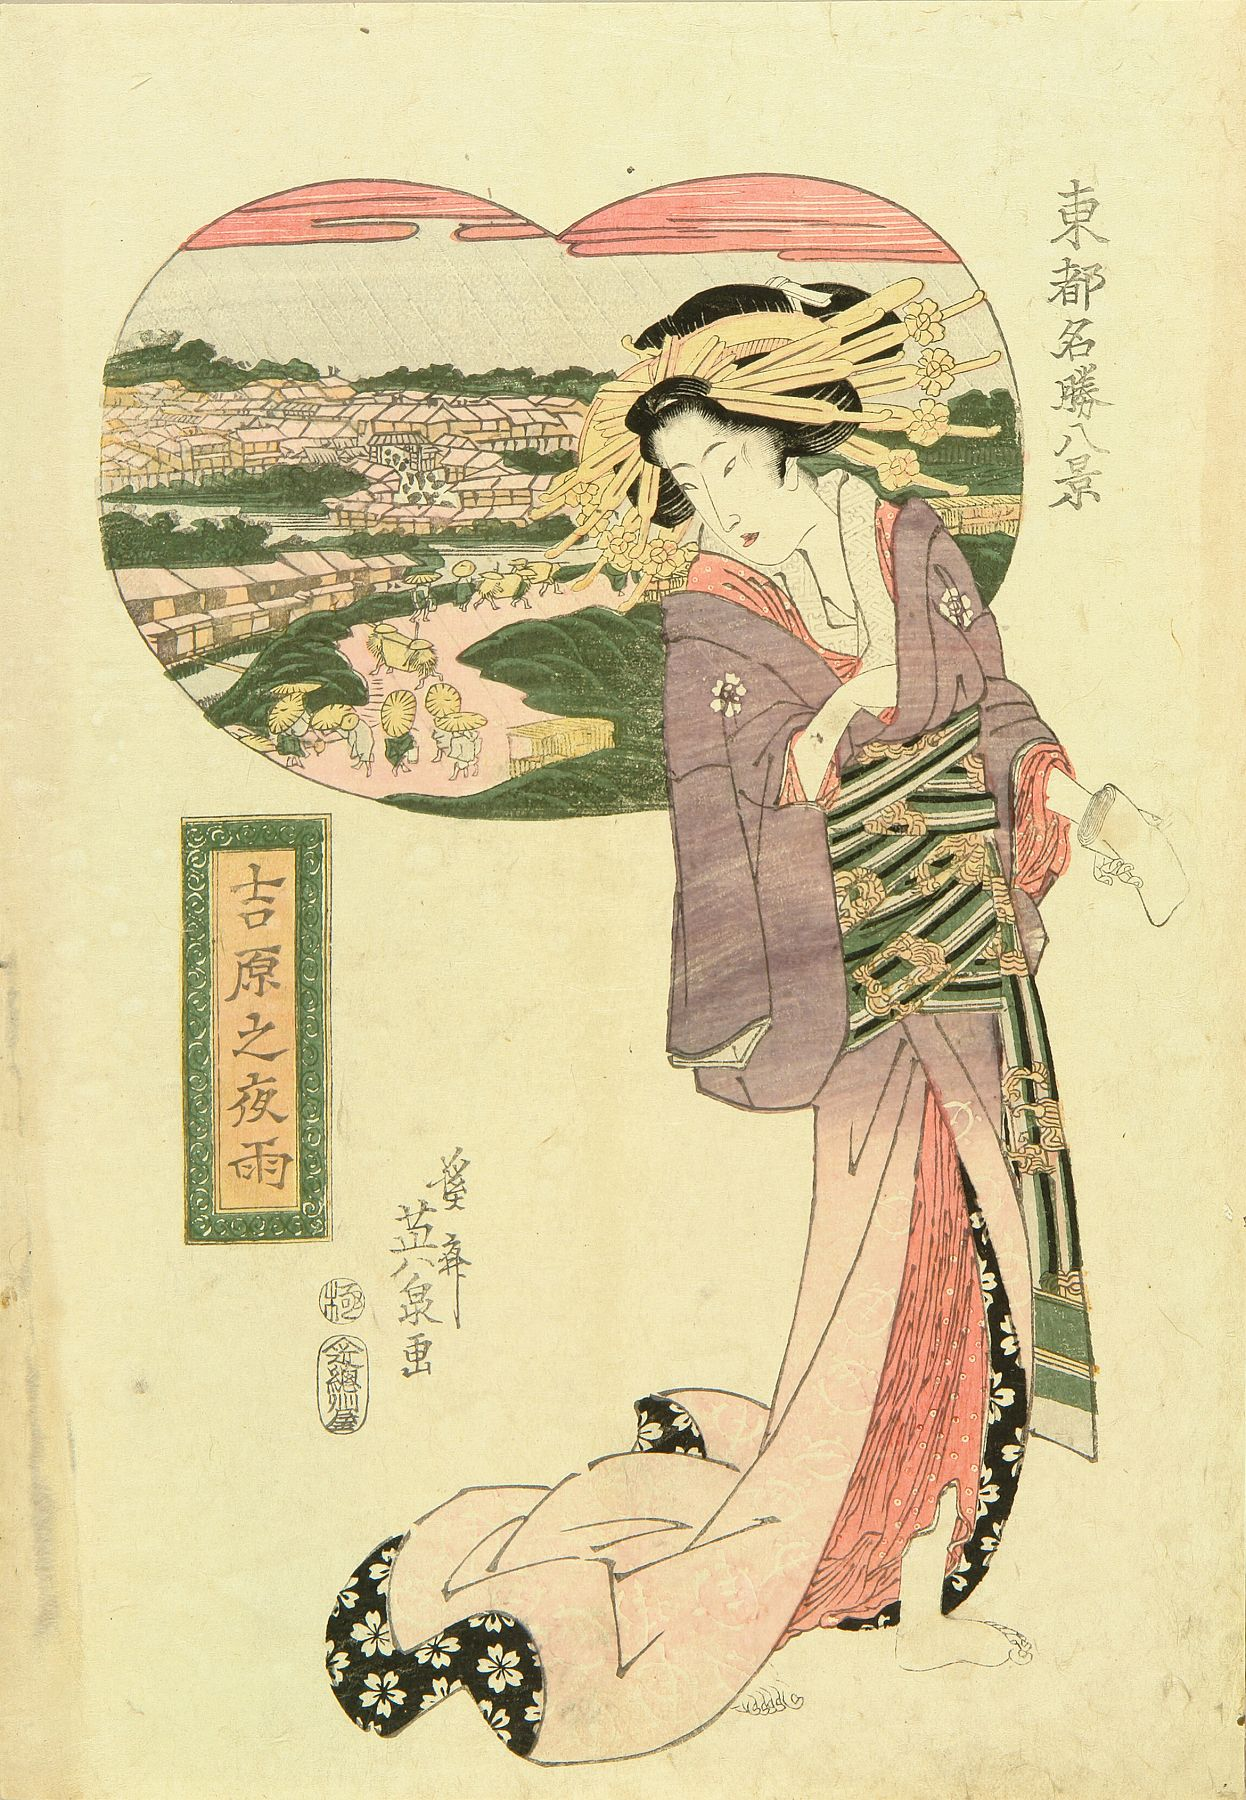 EISEN A full-length portrait of a courtesan, titled <i>Yoshiwara no yau</i> (Night rain at Yoshiwara), from <i>Edo meisho hakkei</i> (Eight famous views of Edo)